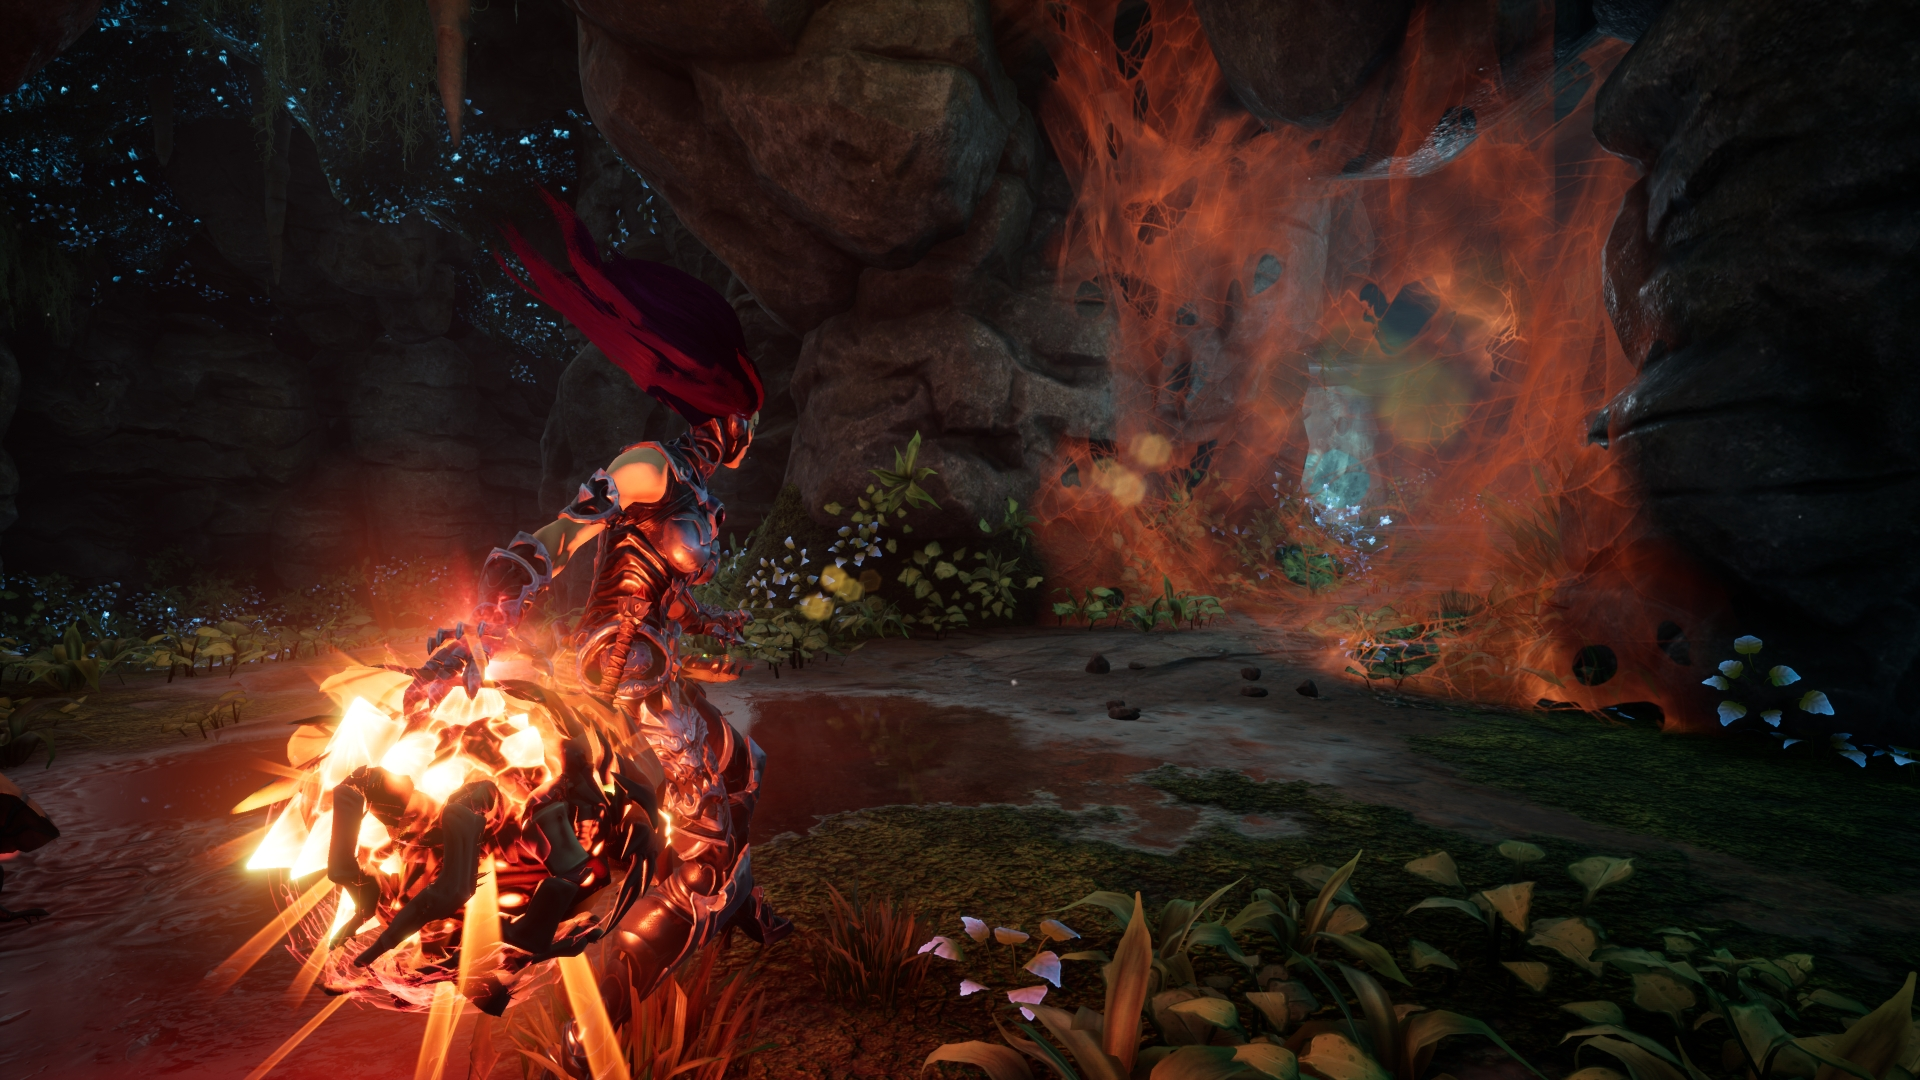 Darksiders 3 Gameplay Features Image 4